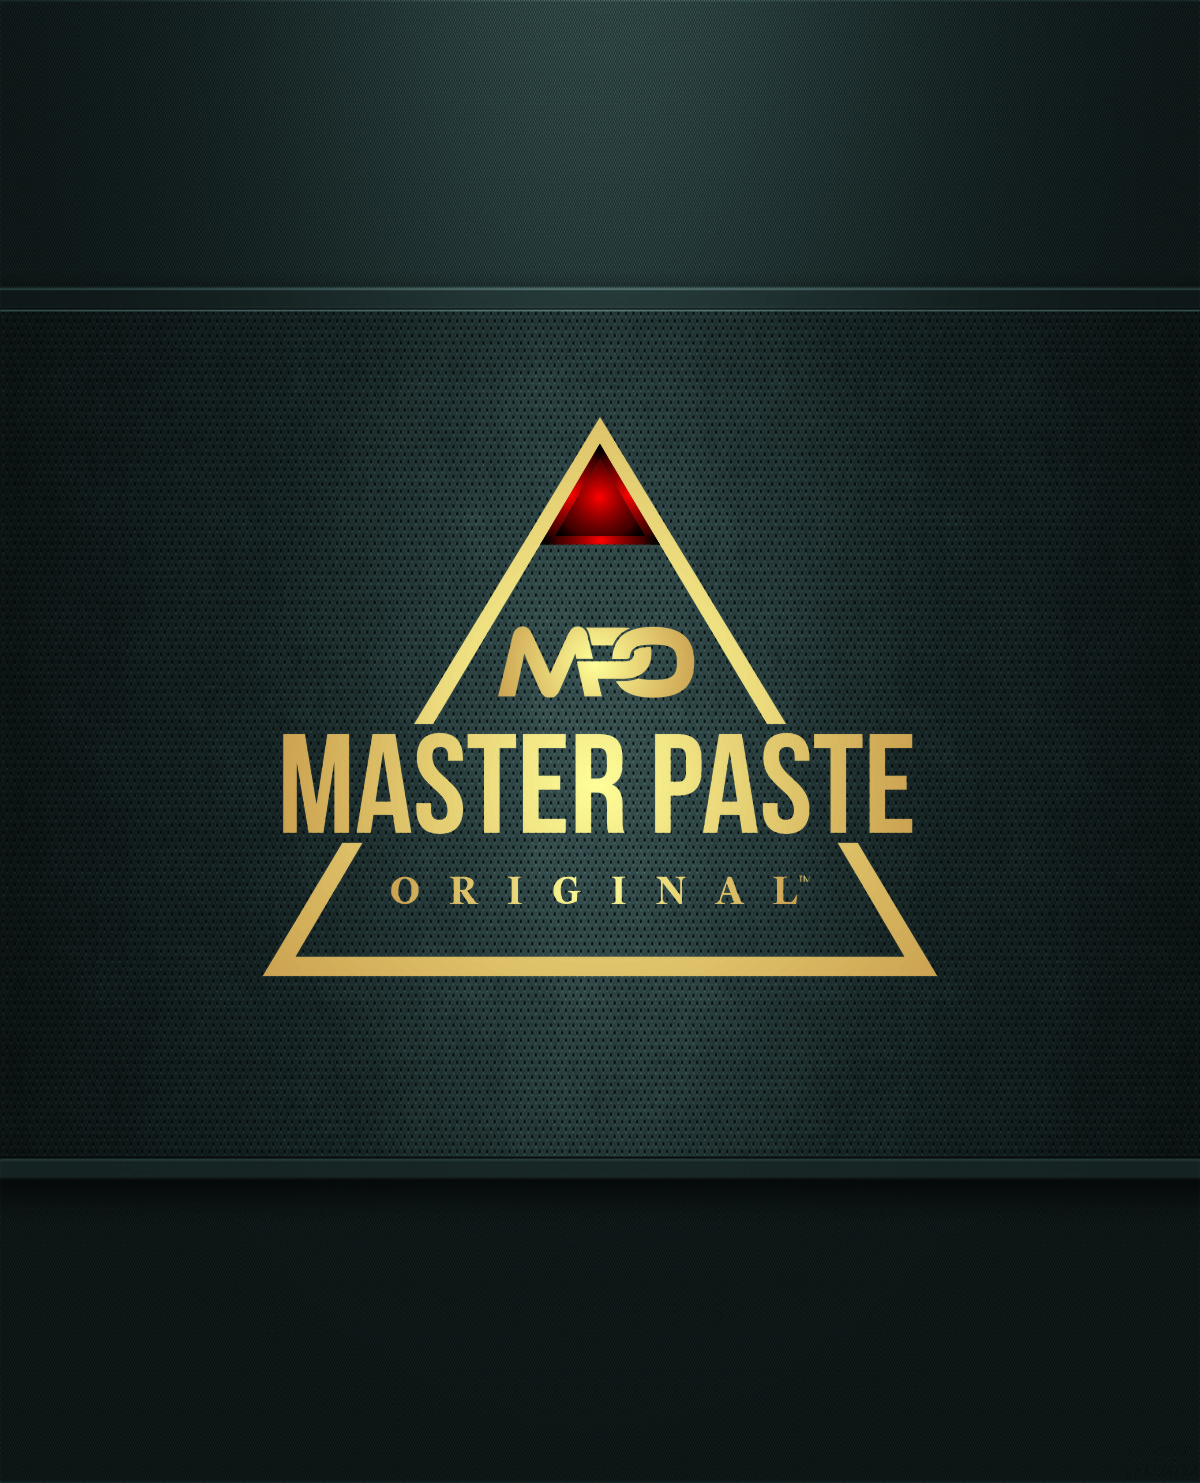 Logo Design by Ngepet_art - Entry No. 50 in the Logo Design Contest Unique Logo Design Wanted for Master Paste Original™.